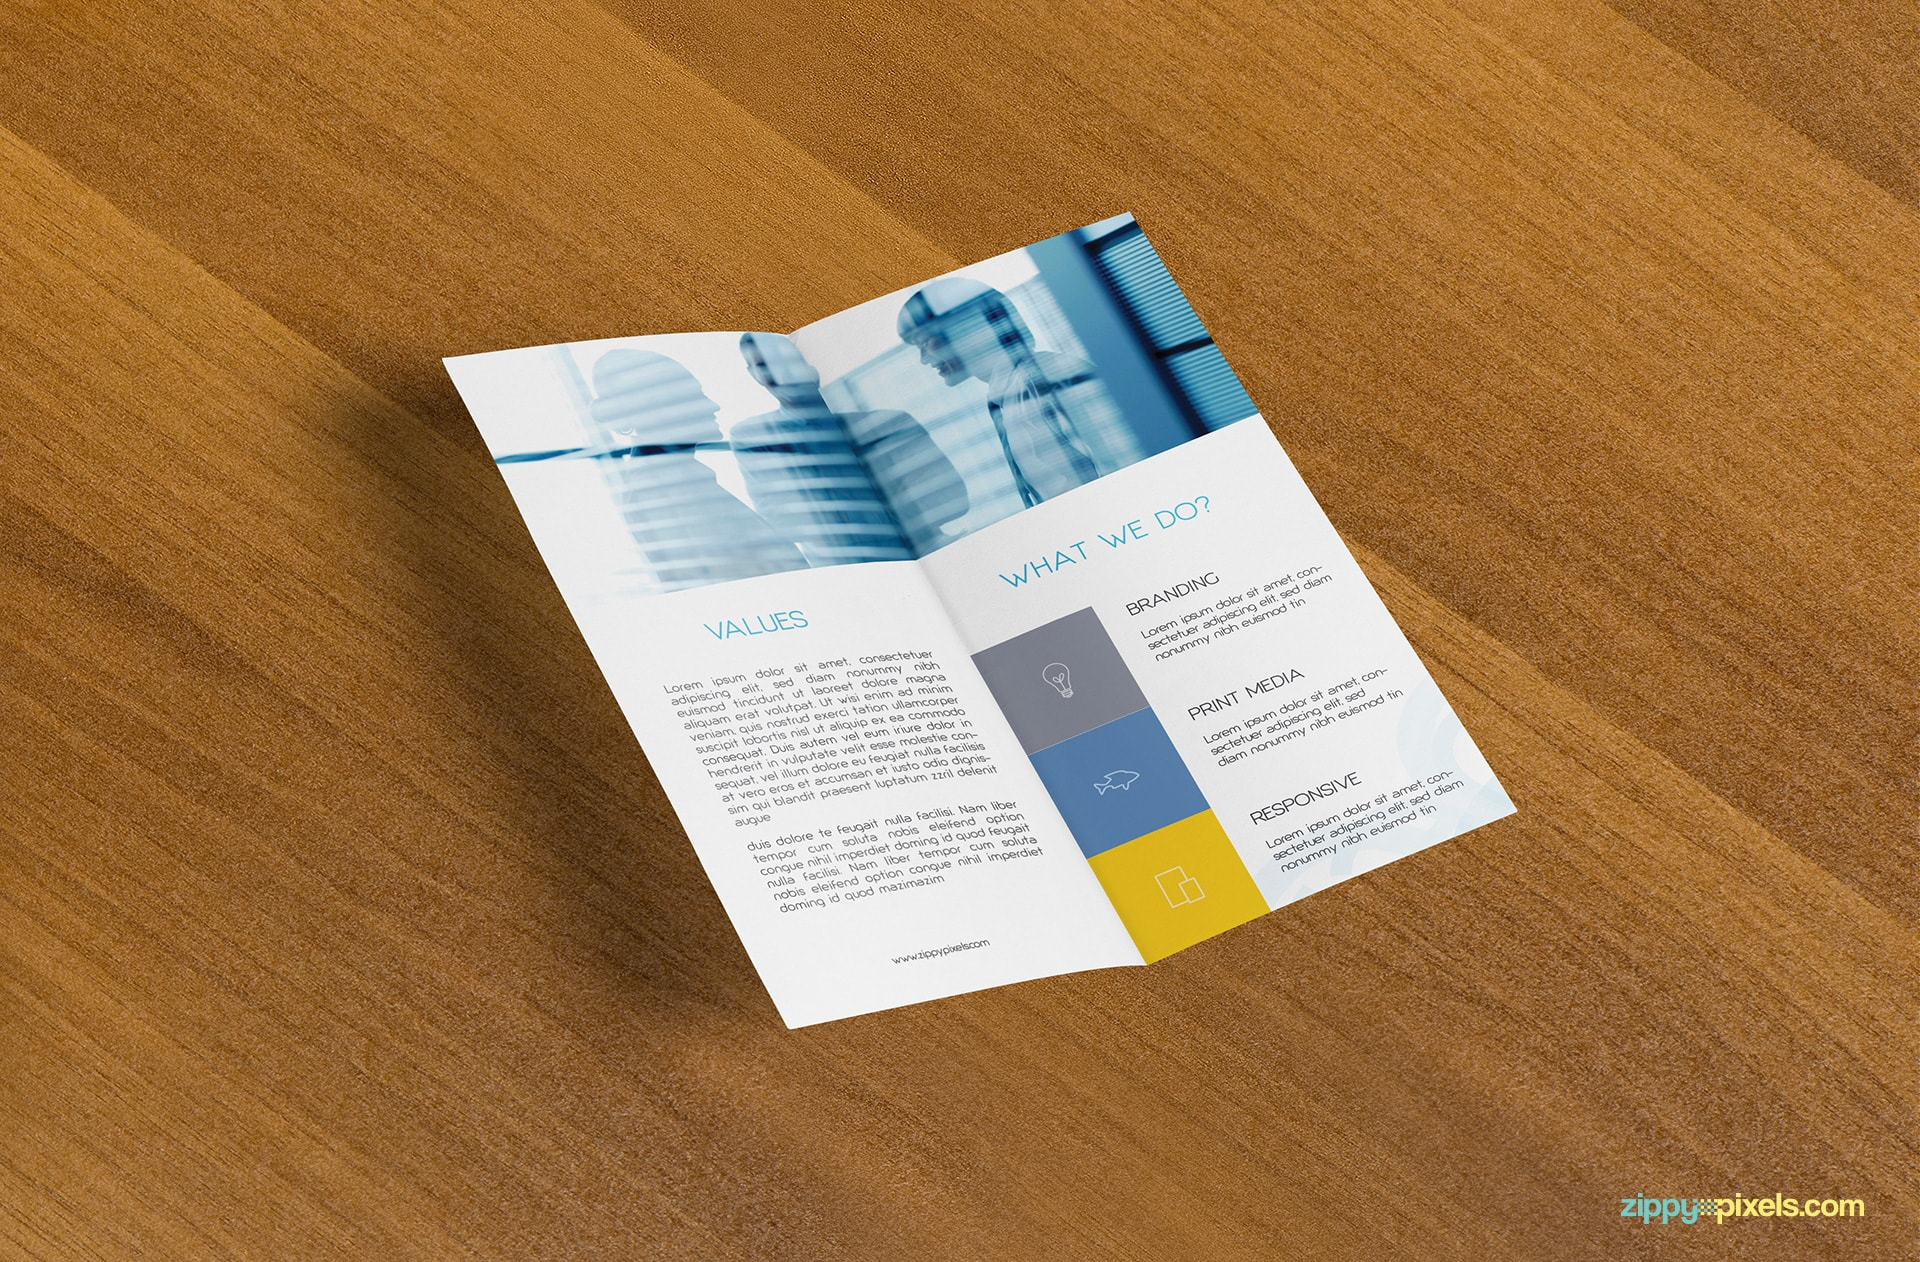 bi-fold-flyer-on-wooden-surface-inner-pages